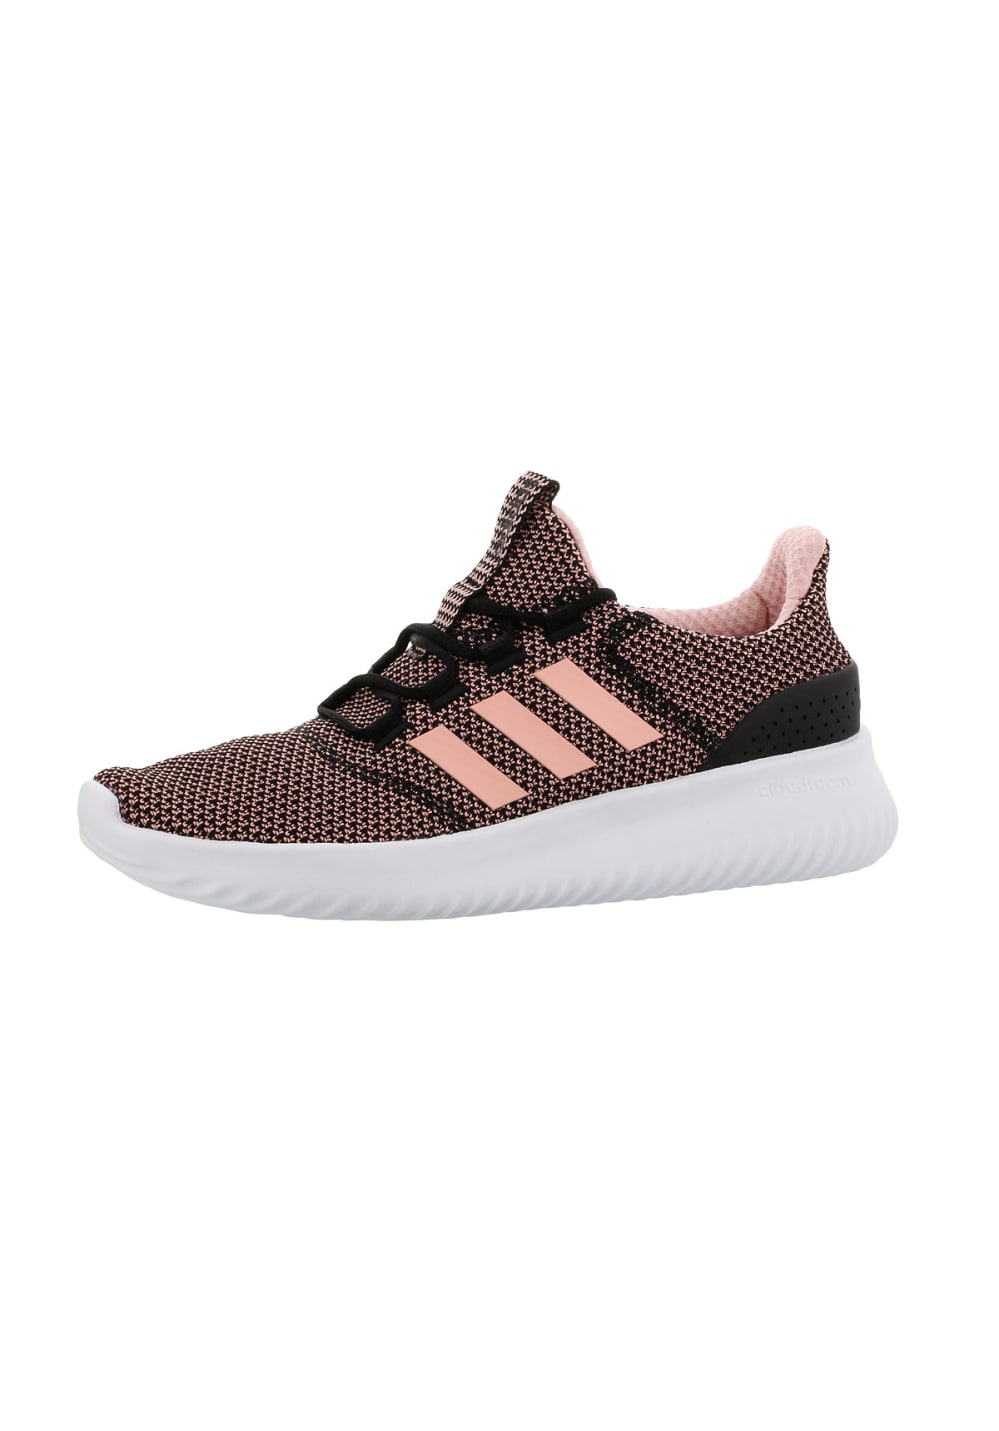 online retailer 757c8 bedd5 Next. -60%. adidas neo. Cloudfoam Ultimate - Running shoes ...